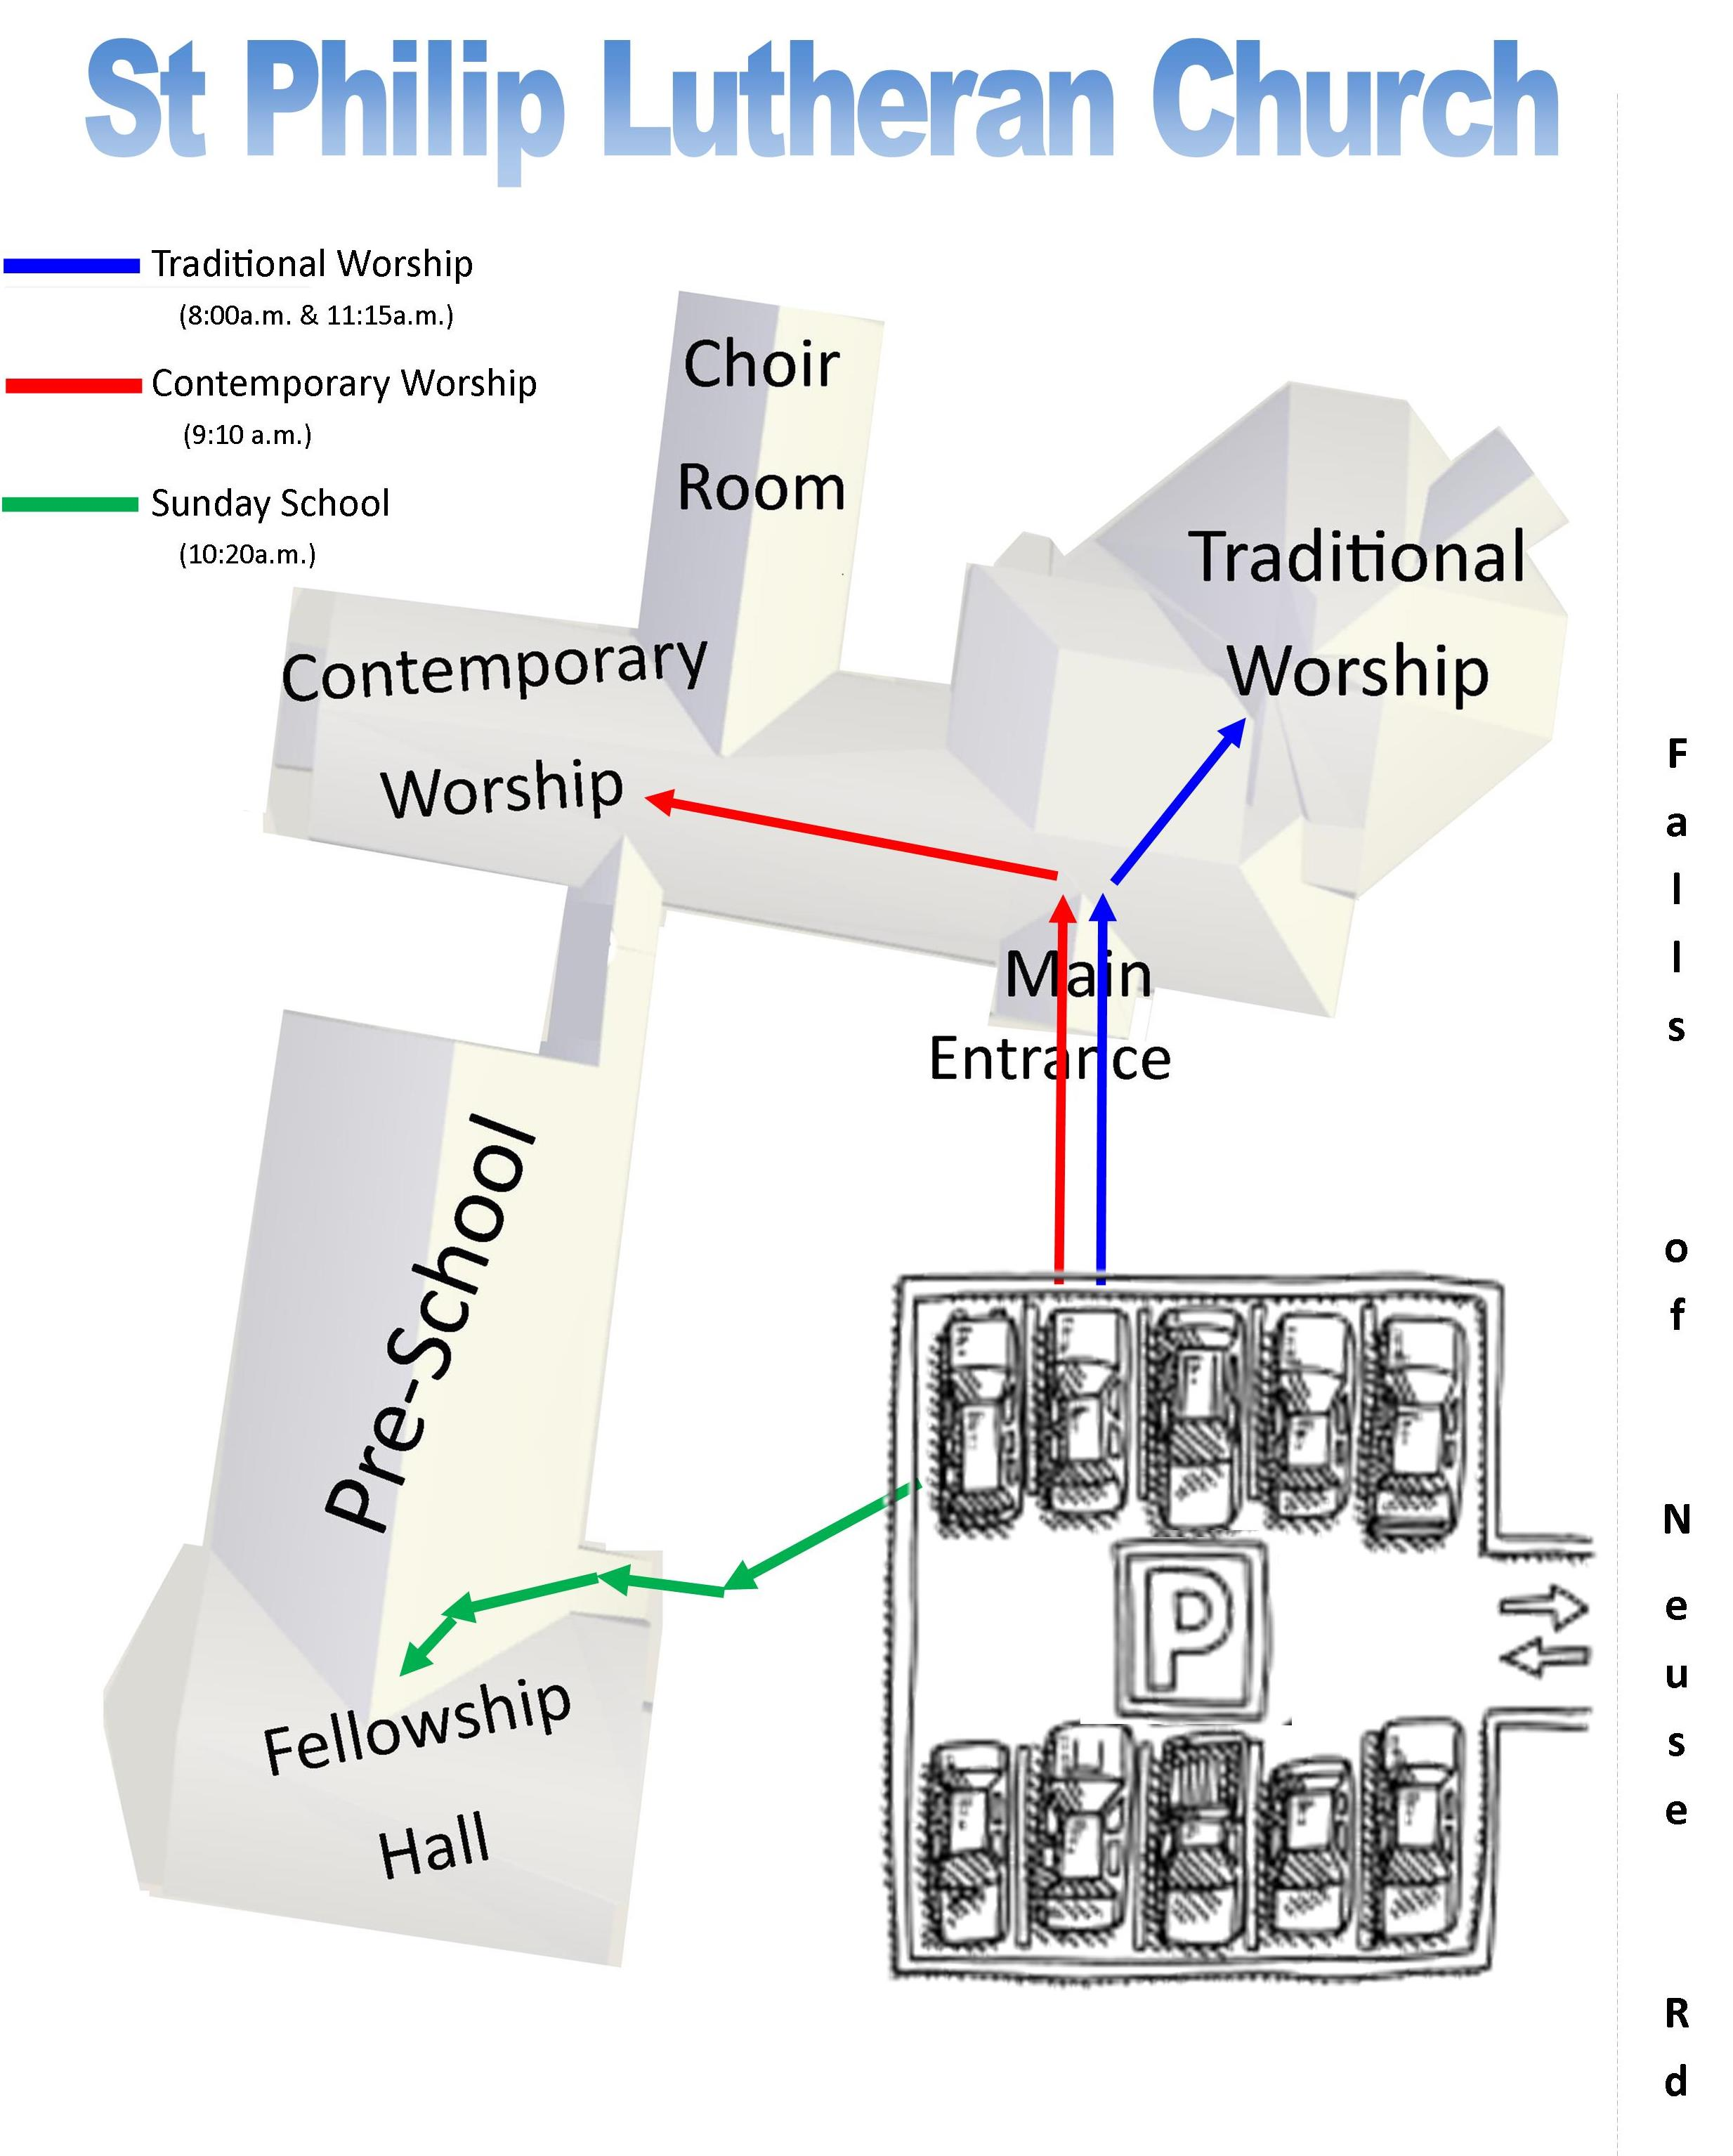 Click for a large image of the church map